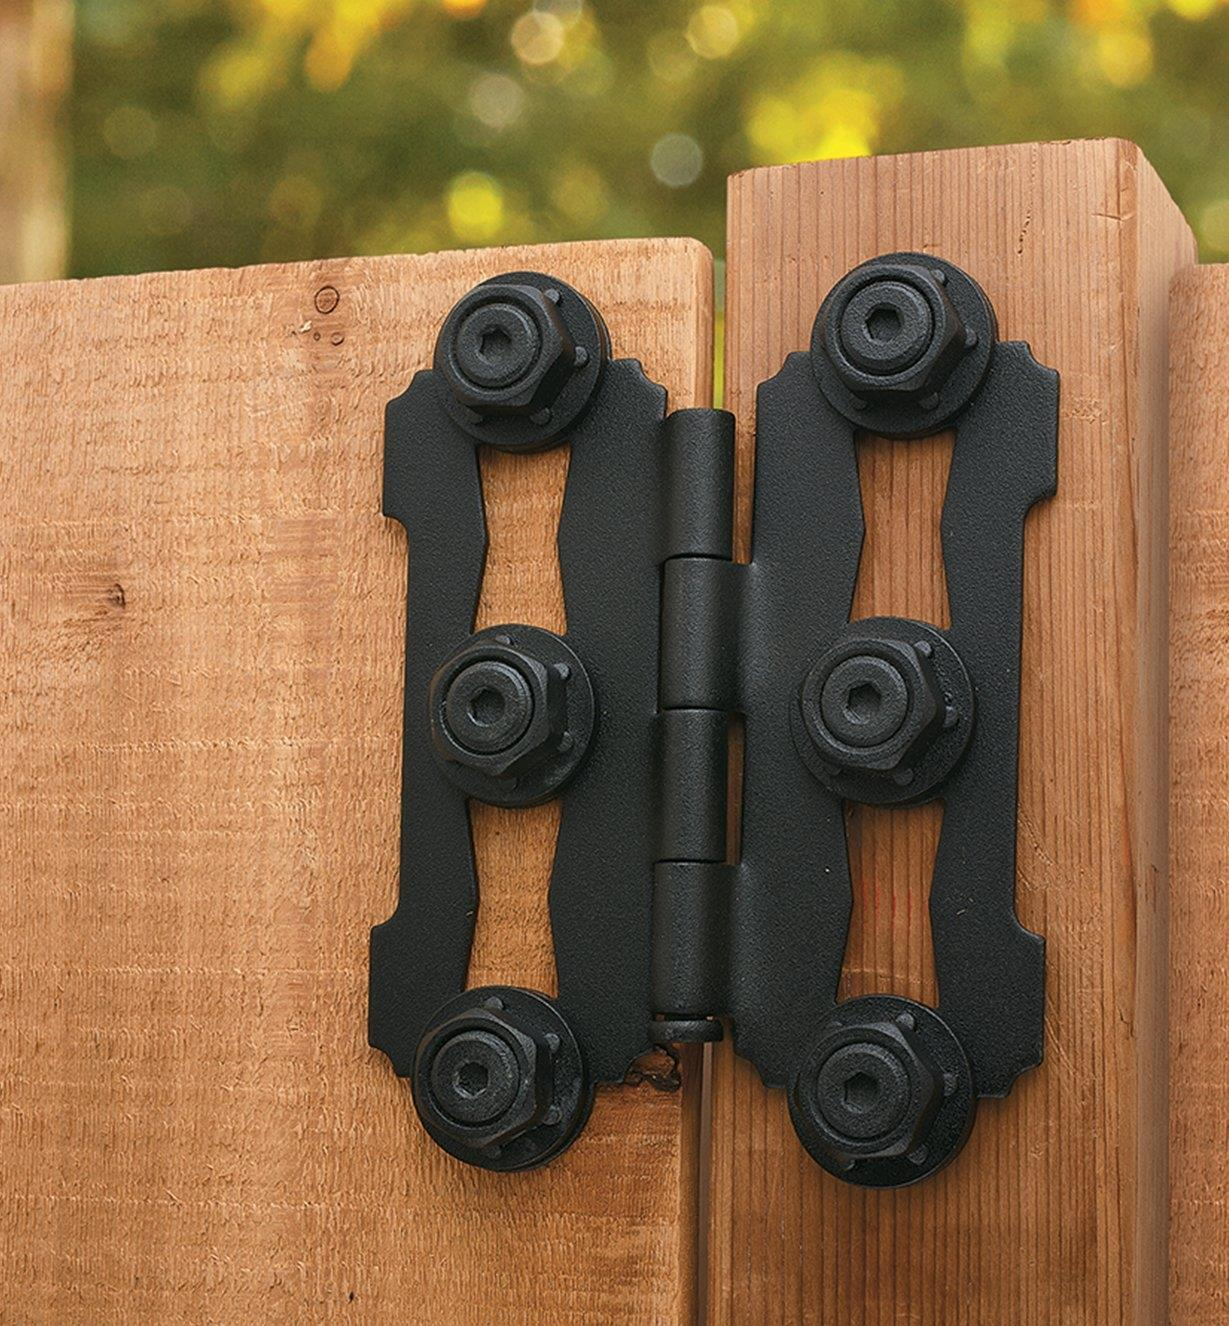 Example of Ozco Butterfly Hinge mounted on a gate